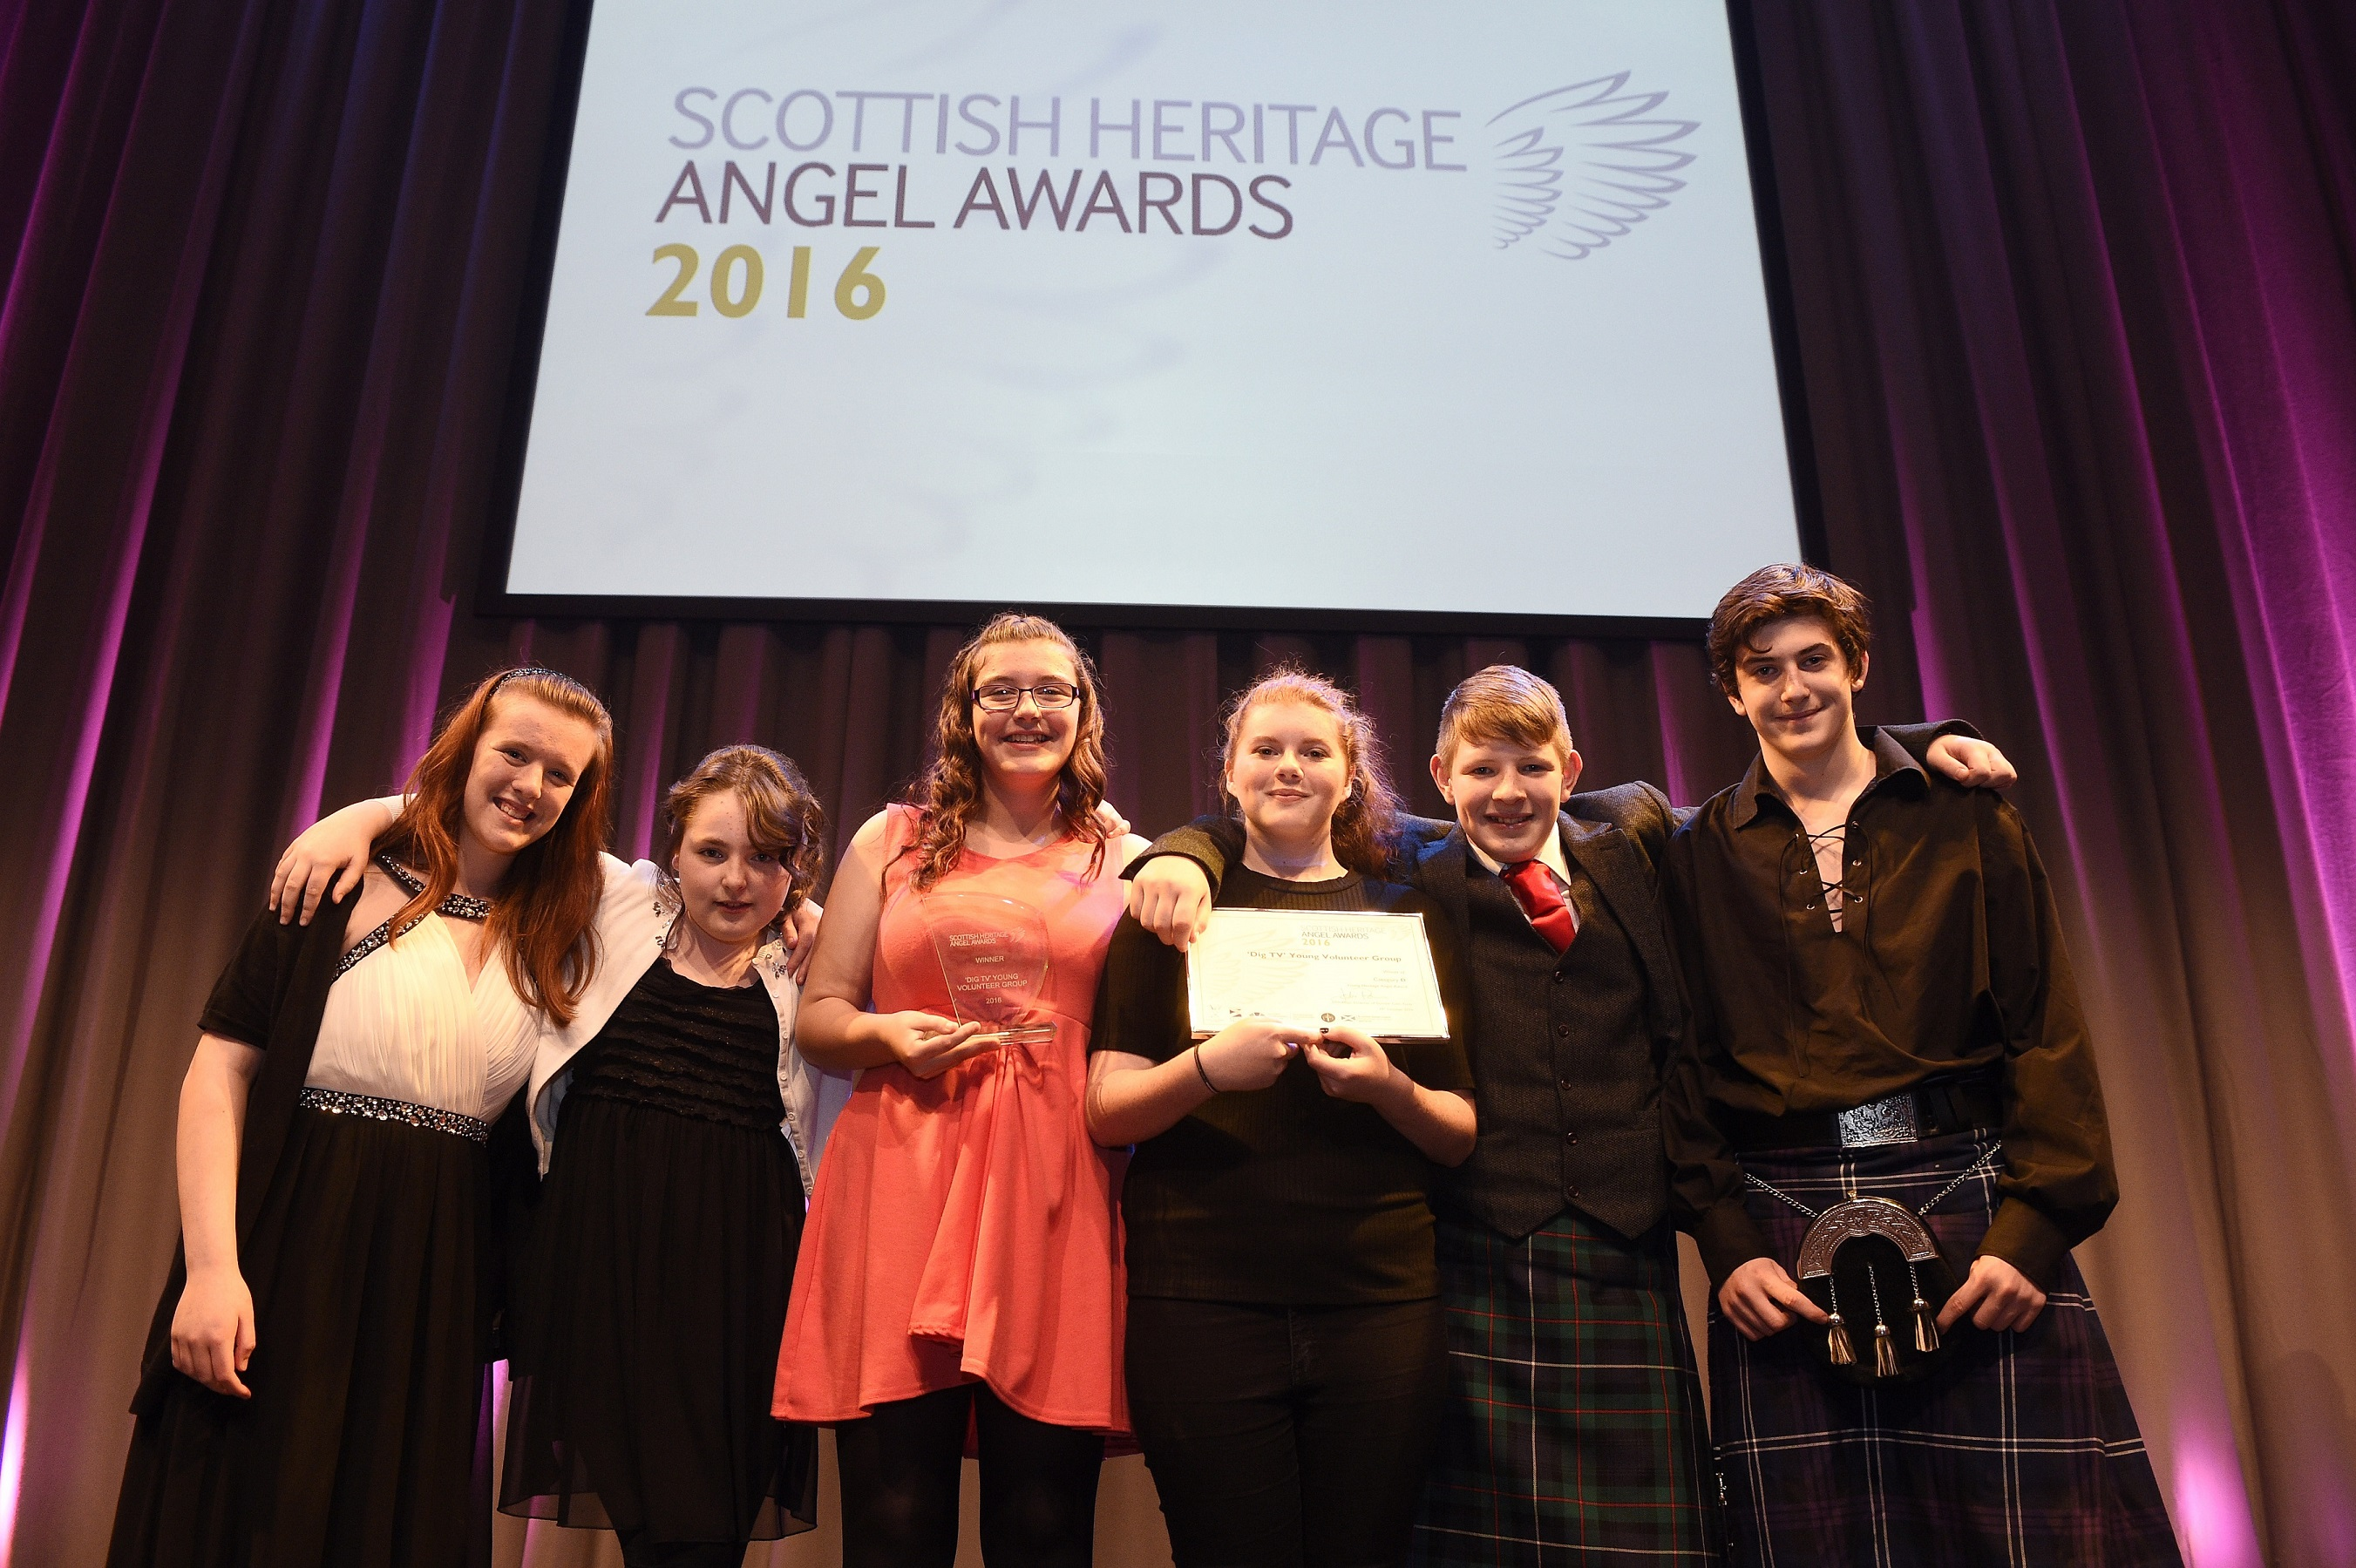 Pic Greg Macvean - 18/10/2016 - 07971 826 457 Scottish Heritage Angel Awards 2016 - Assembly Rooms, George Street